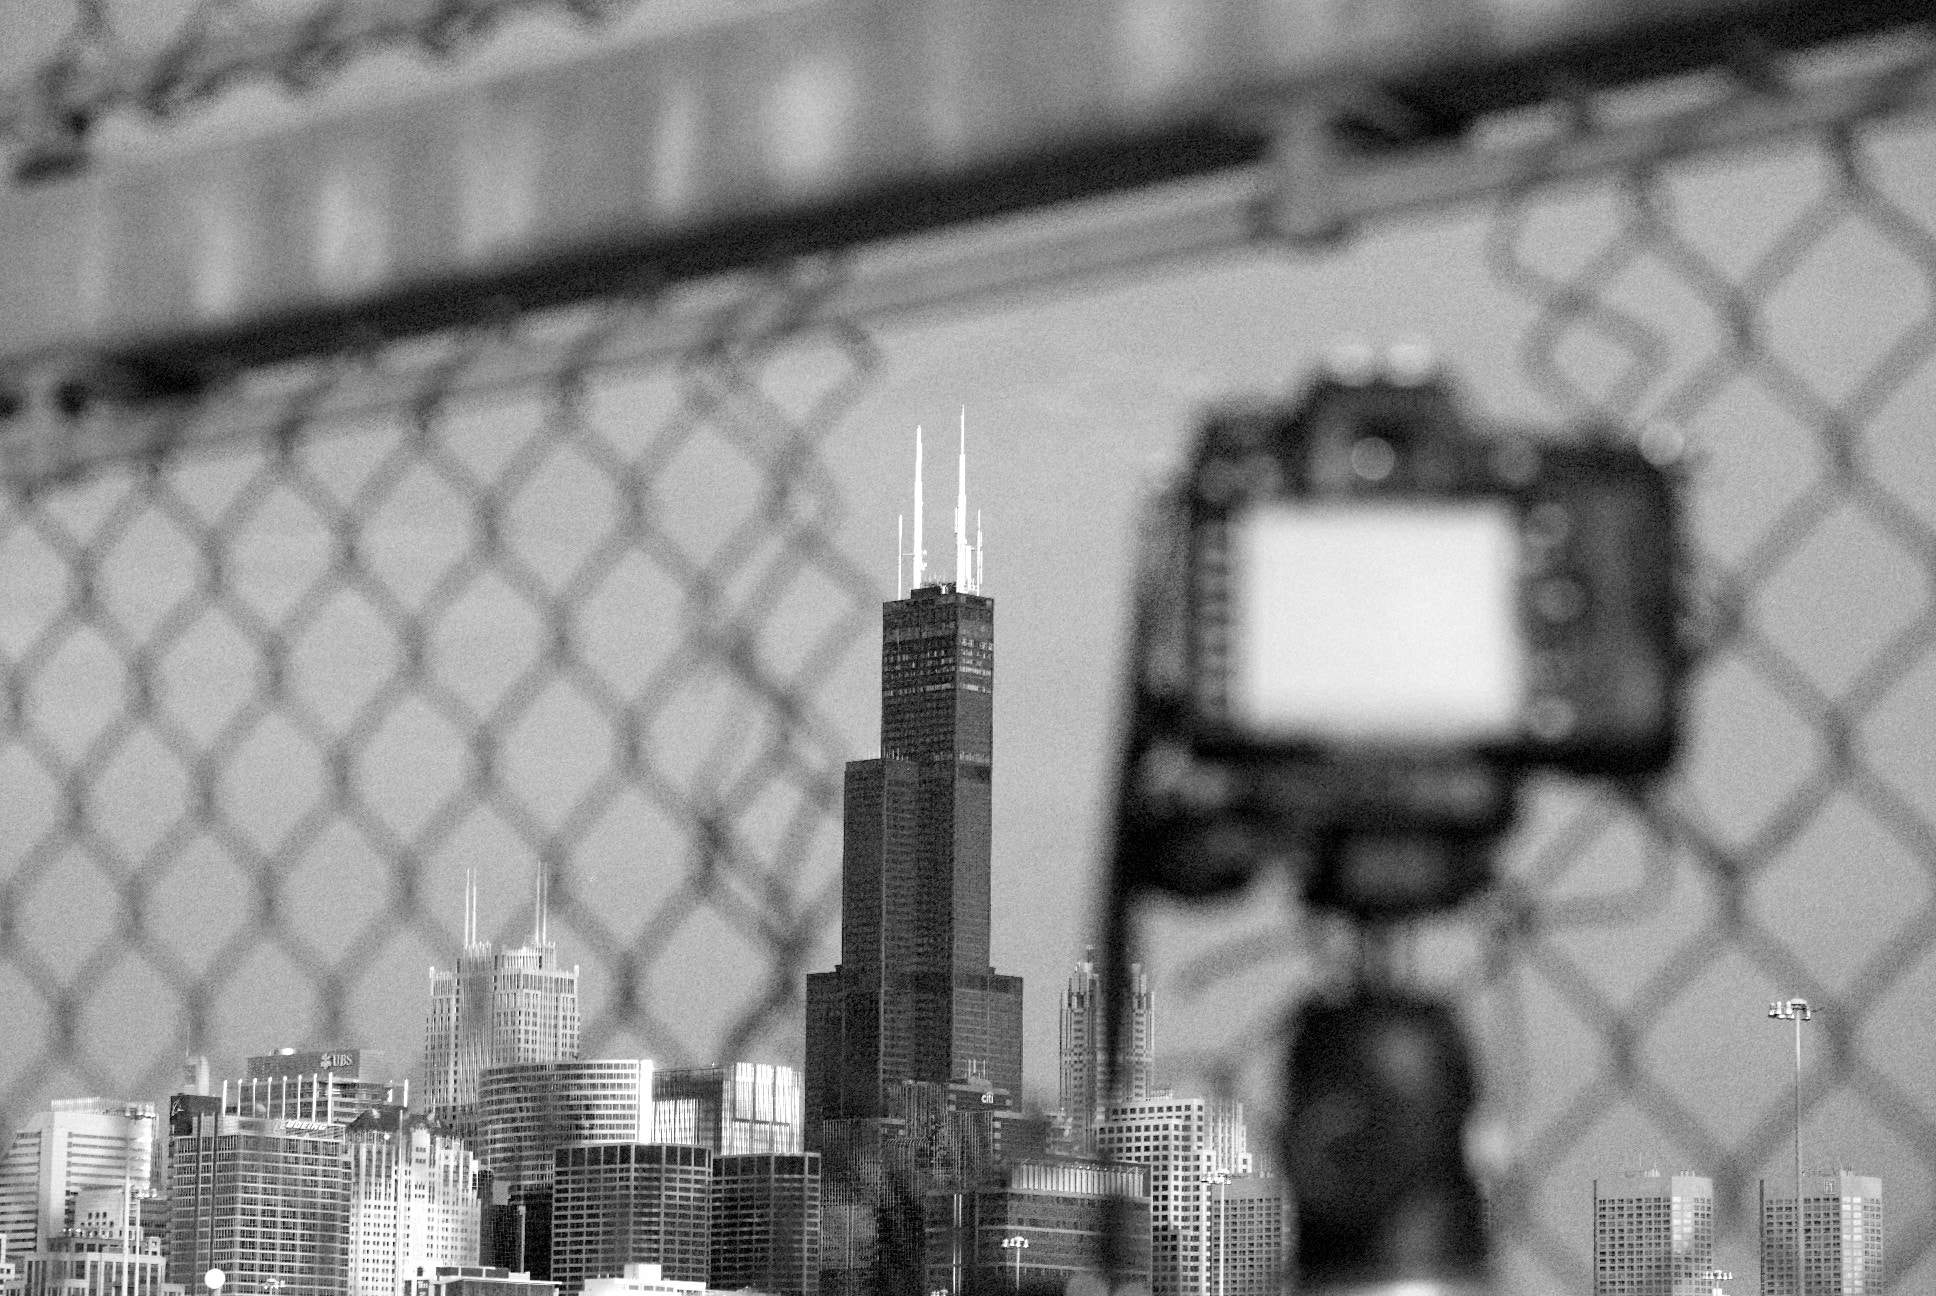 Photograph Shooting Chicago by James Neville on 500px